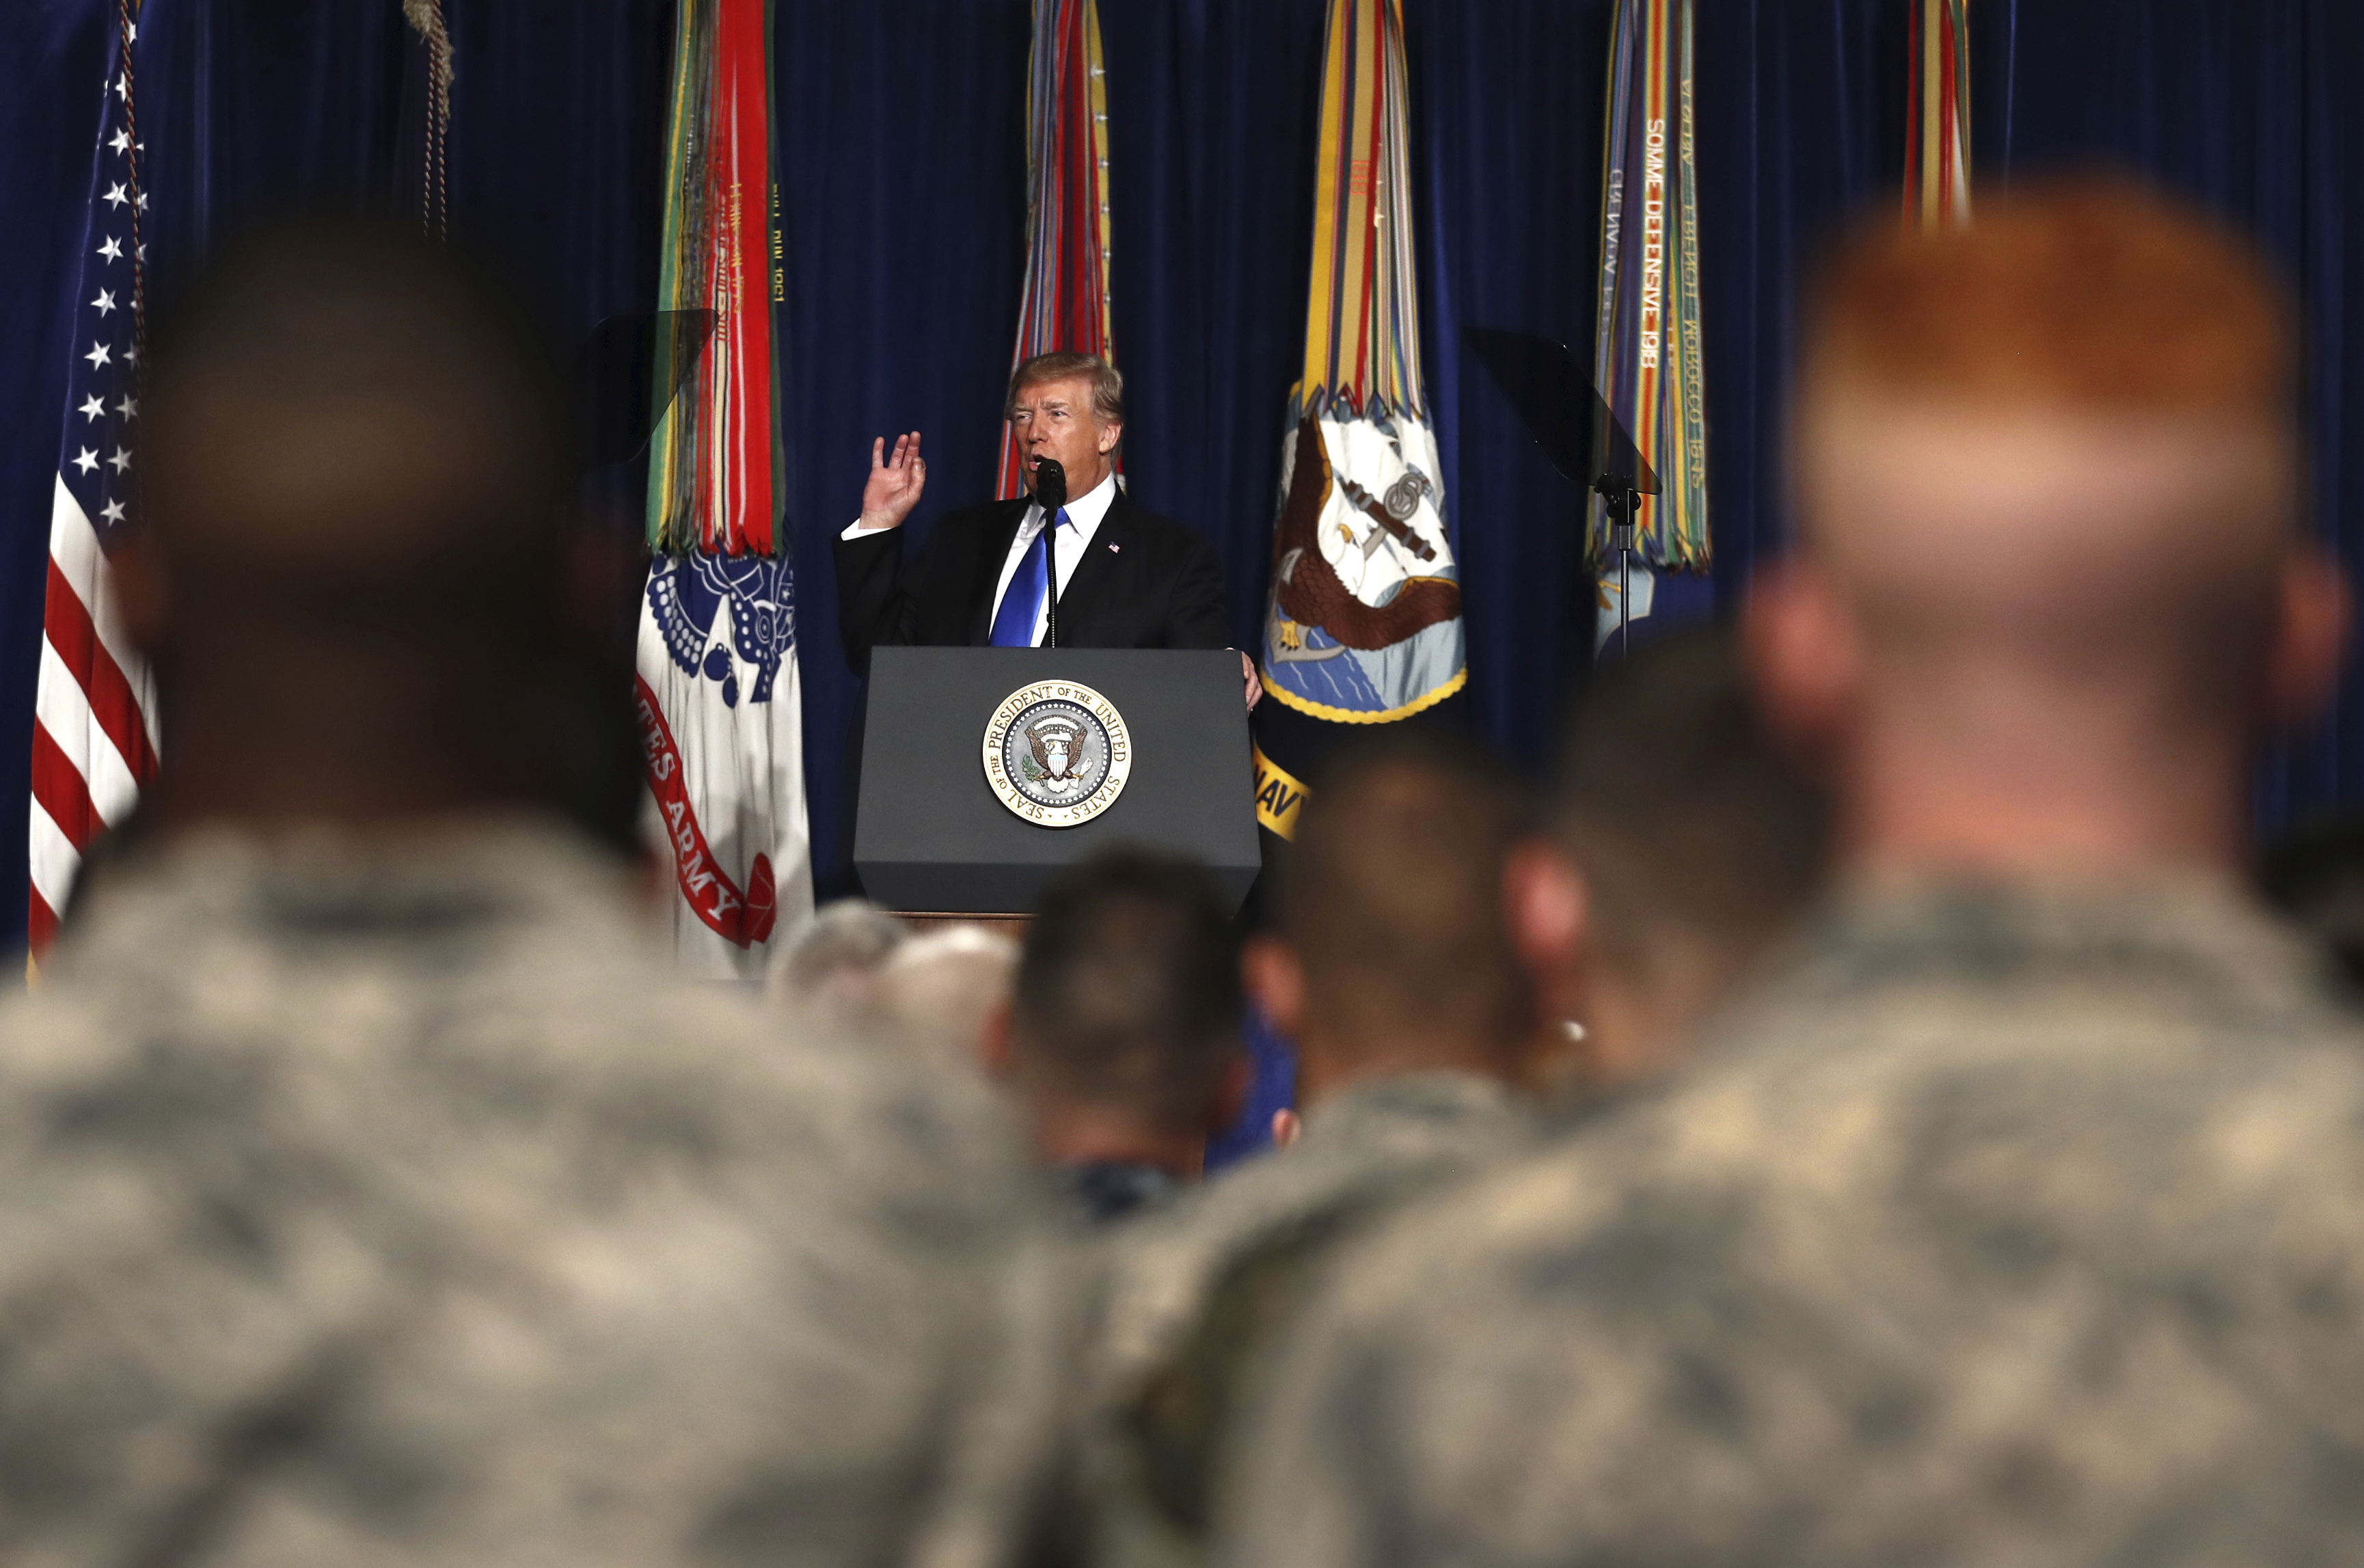 President Donald Trump speaks at Fort Myer in Arlington Va., about U.S. strategy in Afghanistan.